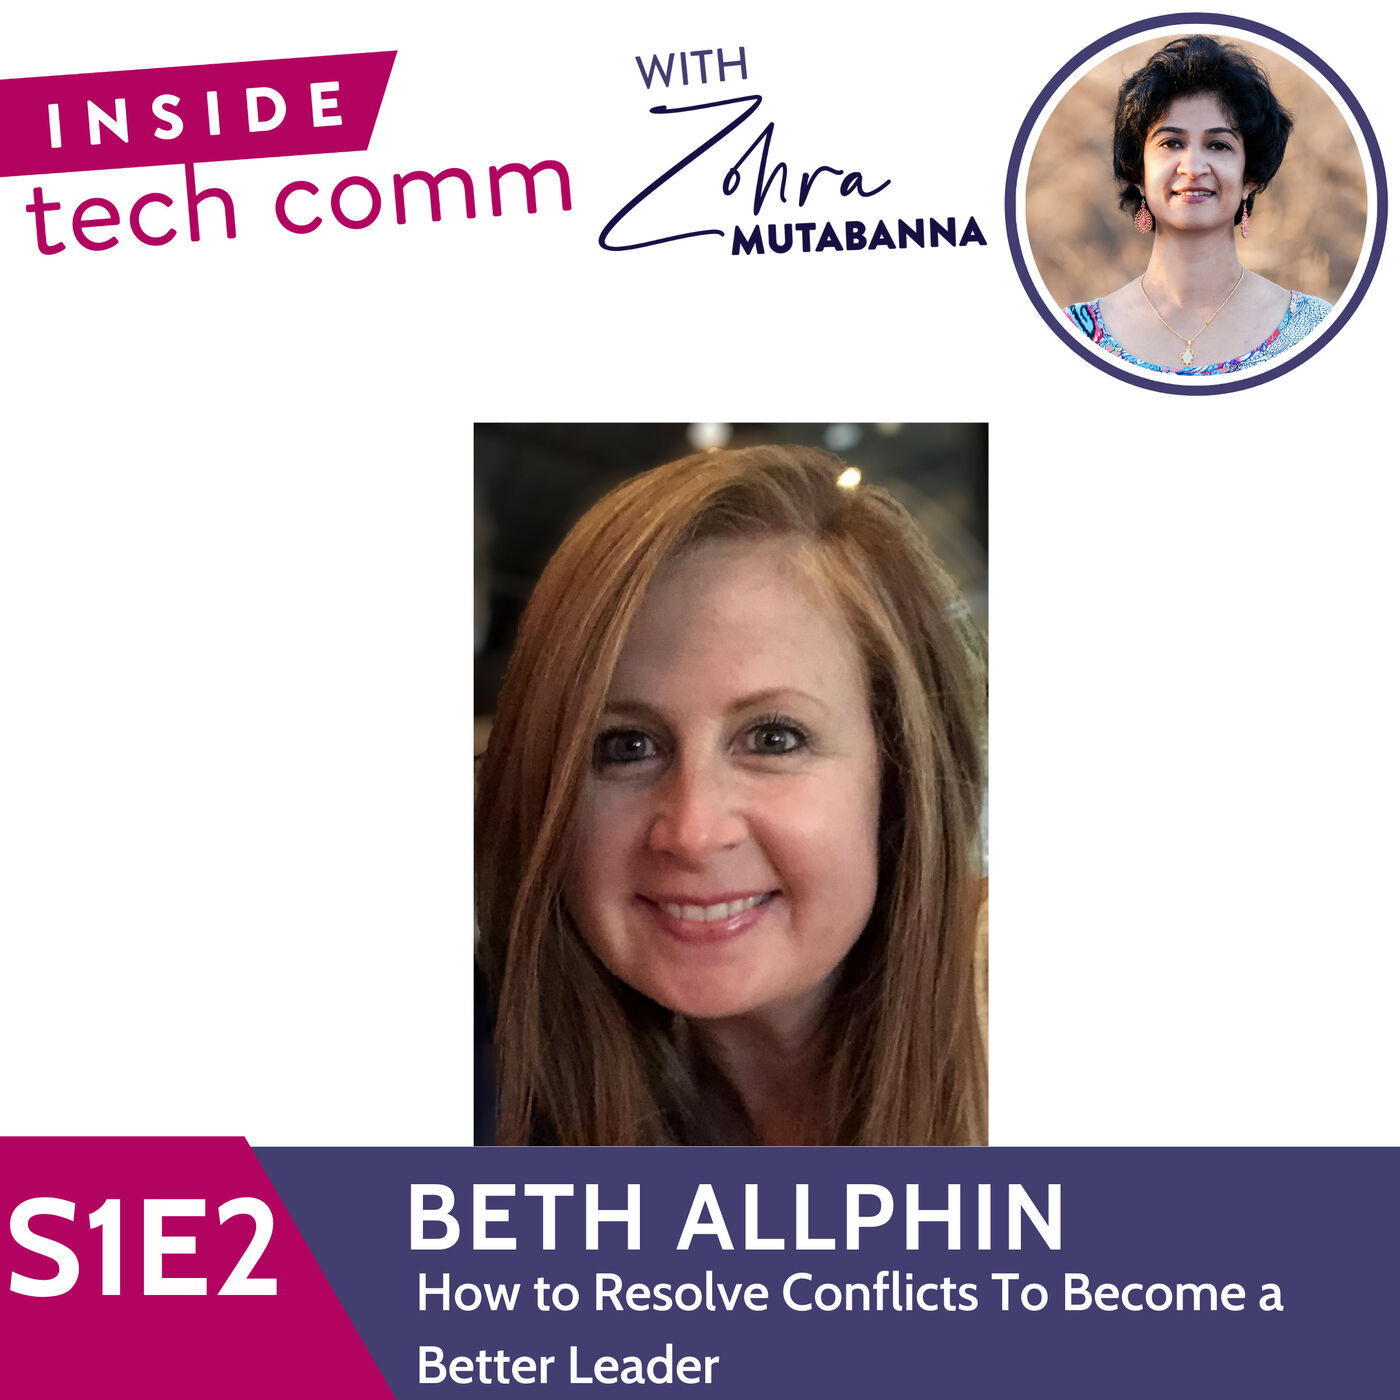 S1E2 How to resolve conflicts to become a better leader with Beth Allphin